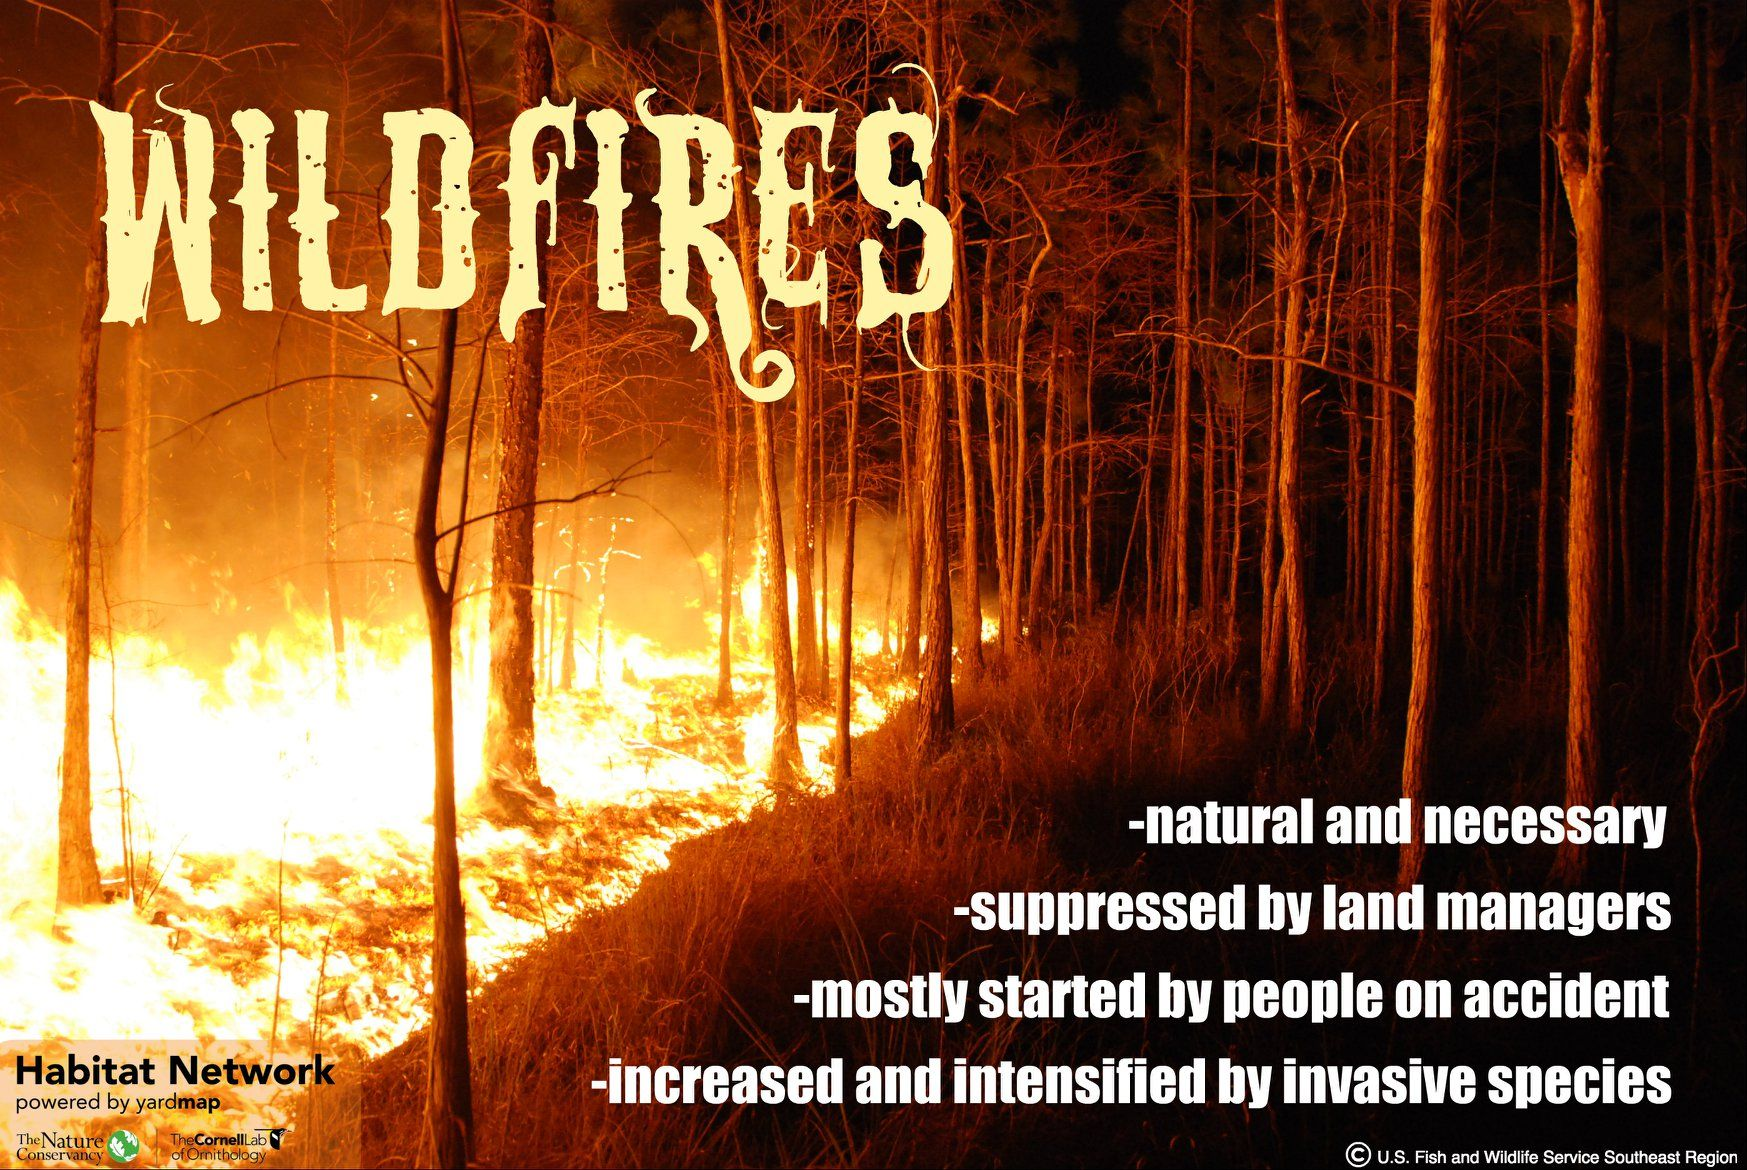 Wildfires are a common natural and necessary part of nature. Human management of landscapes and regular suppression of wildfires, combined with invasive species effects and a changing climate, have increased the intensity and scale of wildfires.